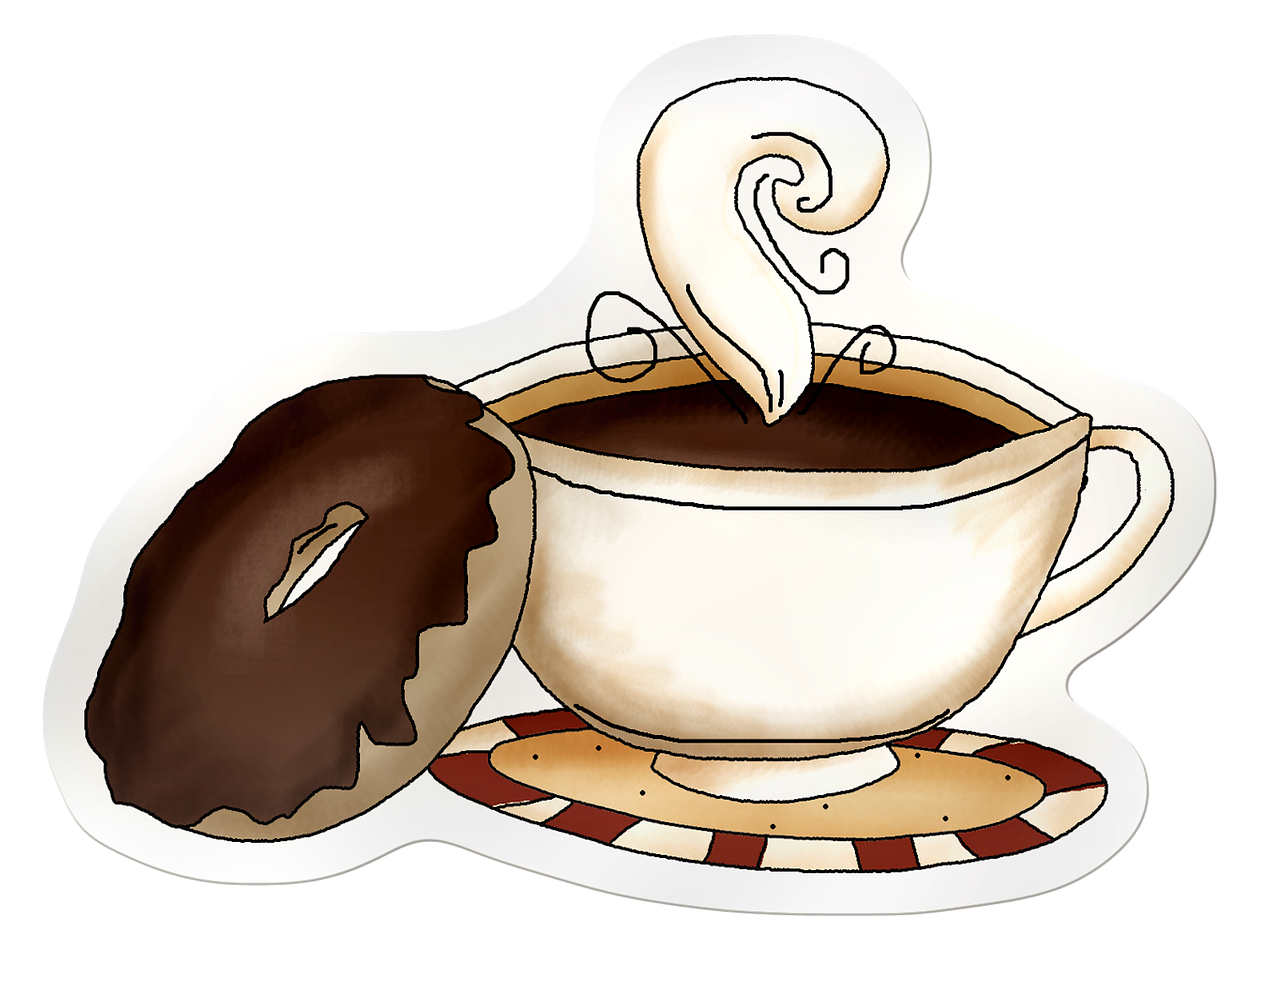 Coffee cup illustration png. Head of coffe